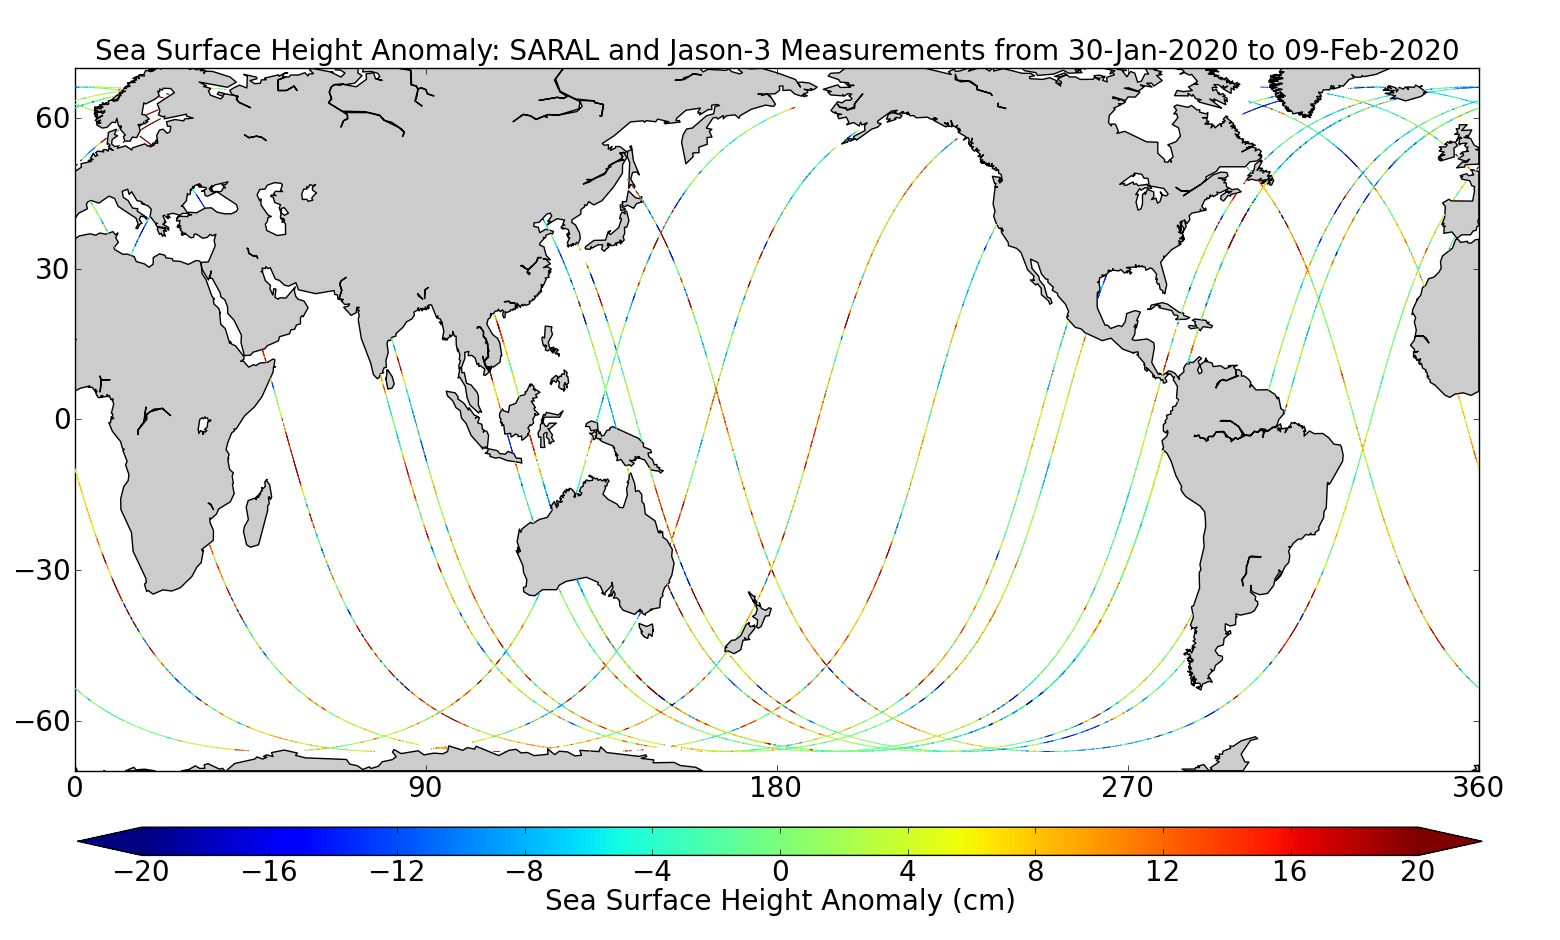 Sea Surface Height Anomaly: SARAL and Jason-3 Measurements from 30-Jan-2020 to 09-Feb-2020